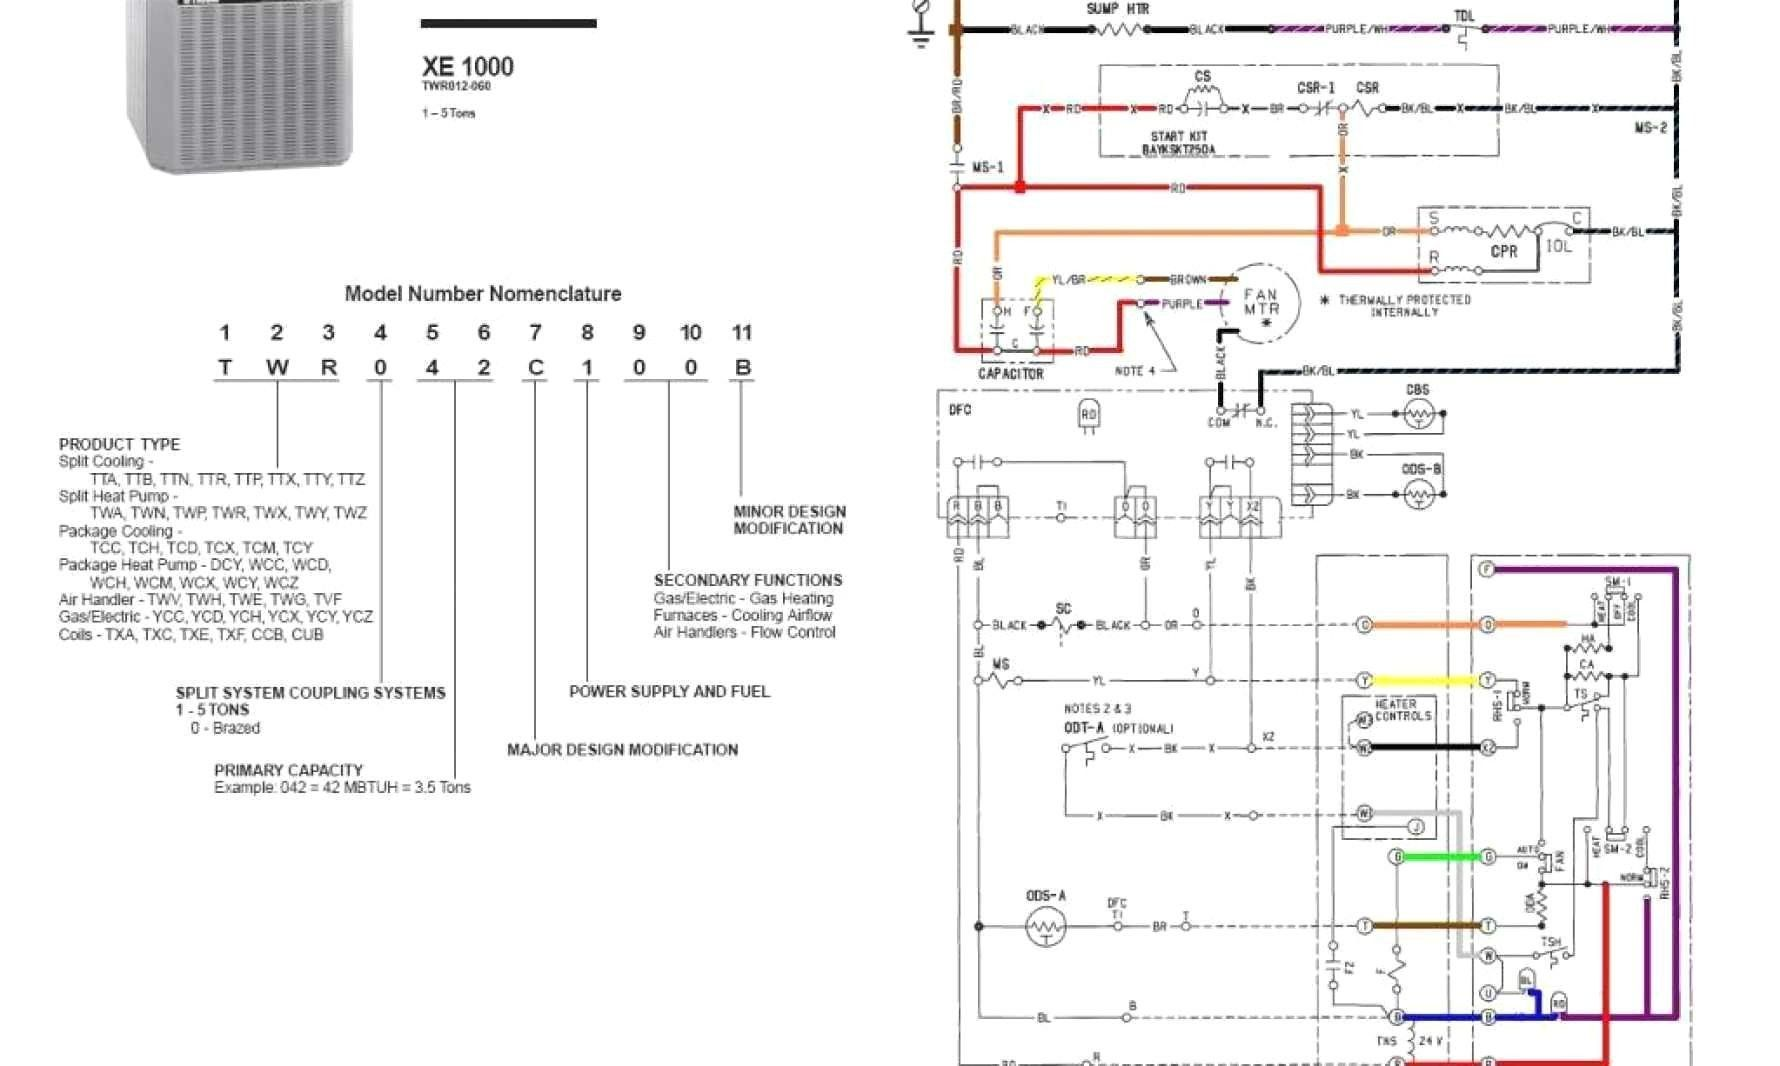 trane xr13 wiring diagram wiring diagram trane gas furnace xe80 troubleshoot trane xl13i wiring diagram #1